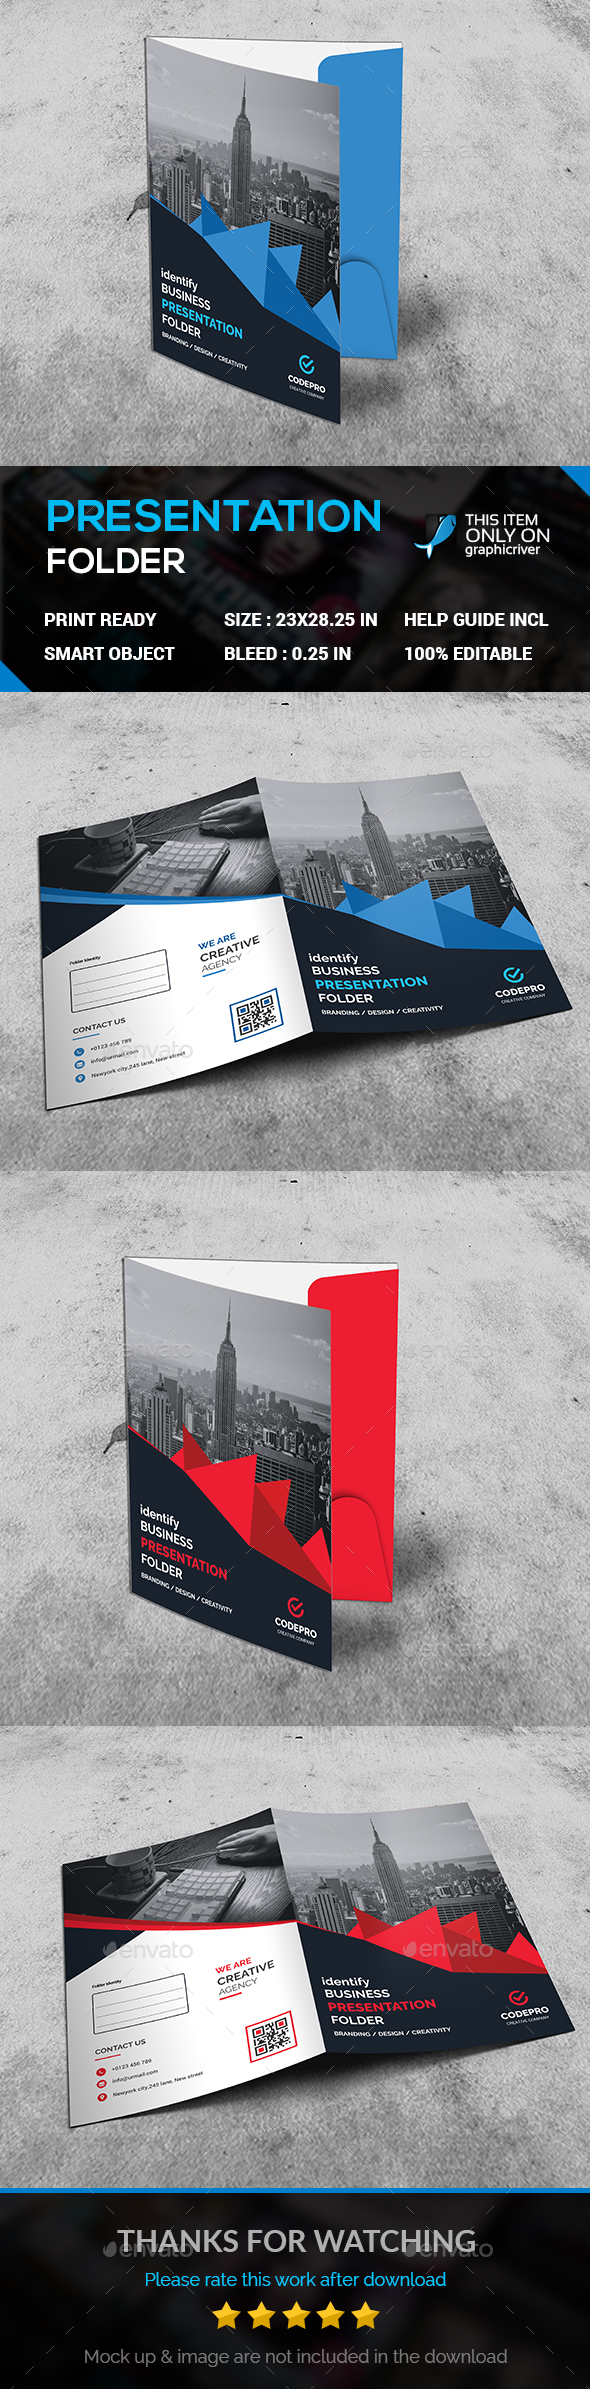 CORPORATE PREAENTATION FOLDER - Stationery Print Templates